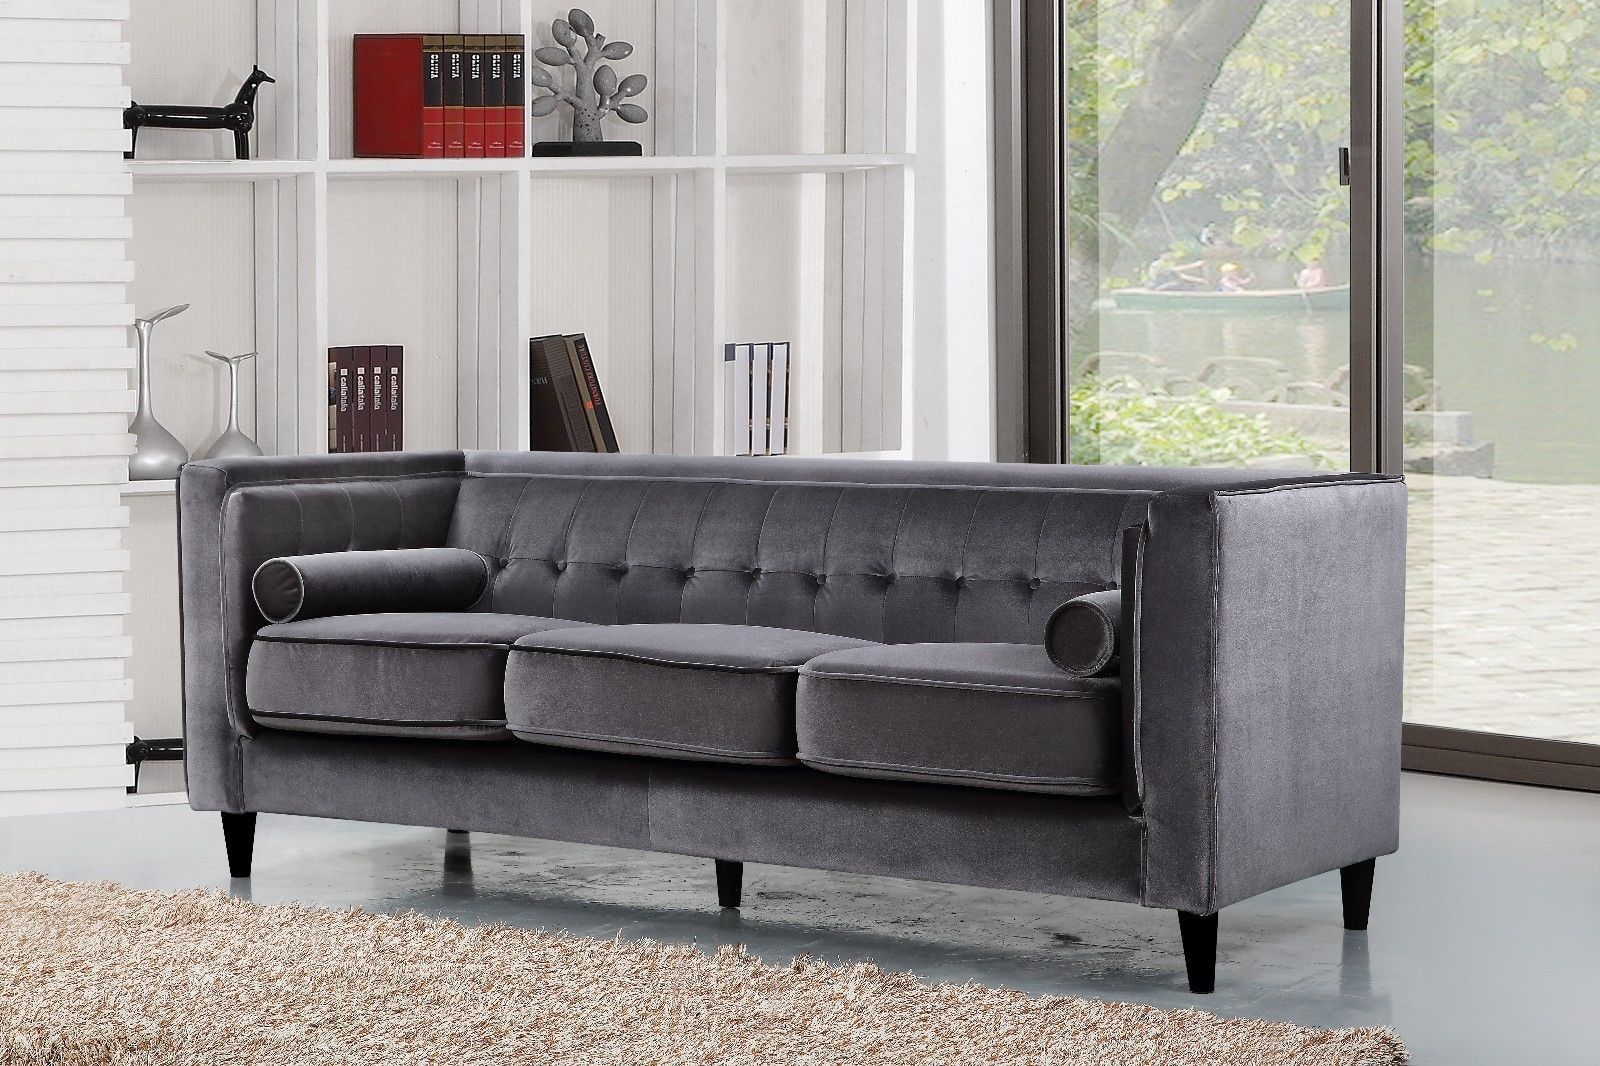 Meridian 642 Taylor Living Room Sofa in Grey Velvet Contemporary Style